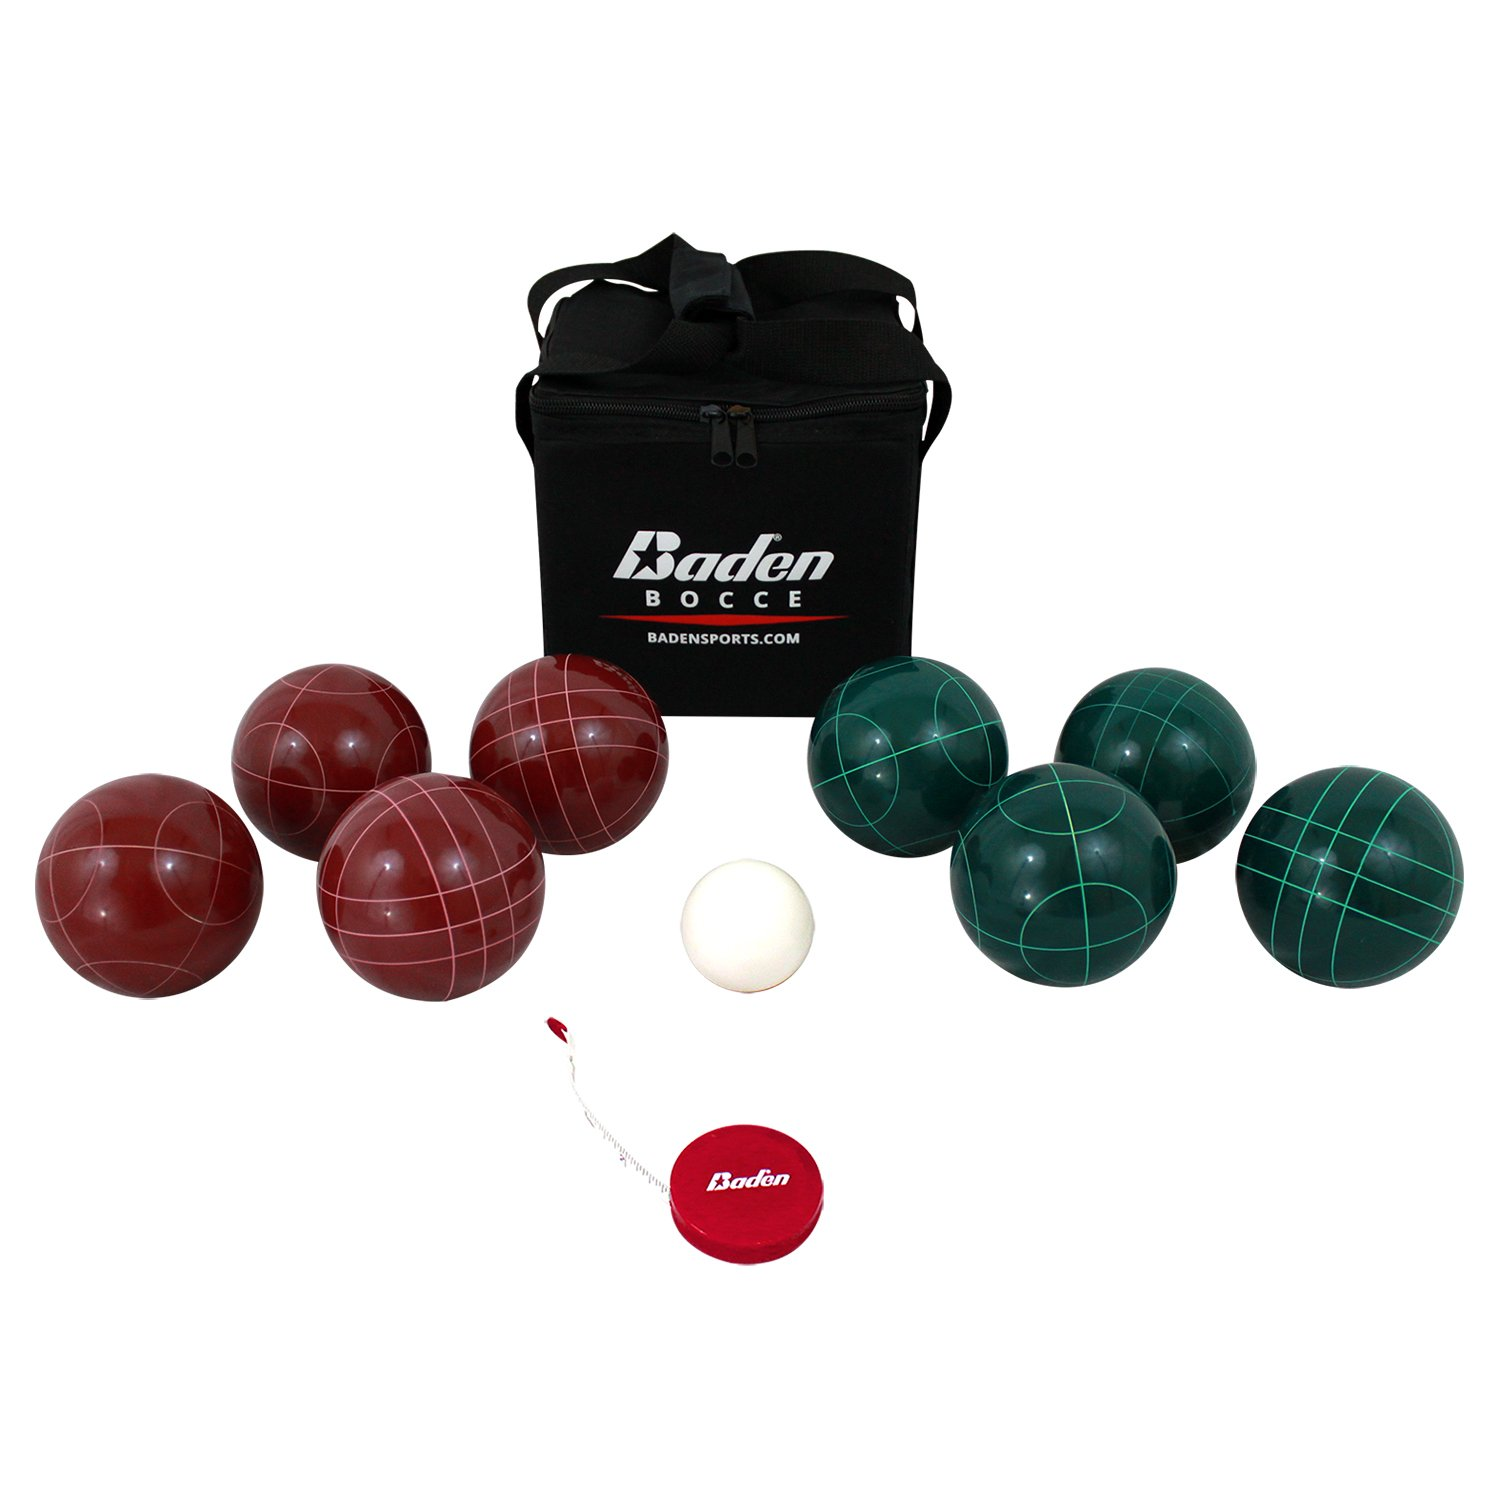 amazon com baden champions 90mm bocce ball set with carry case and